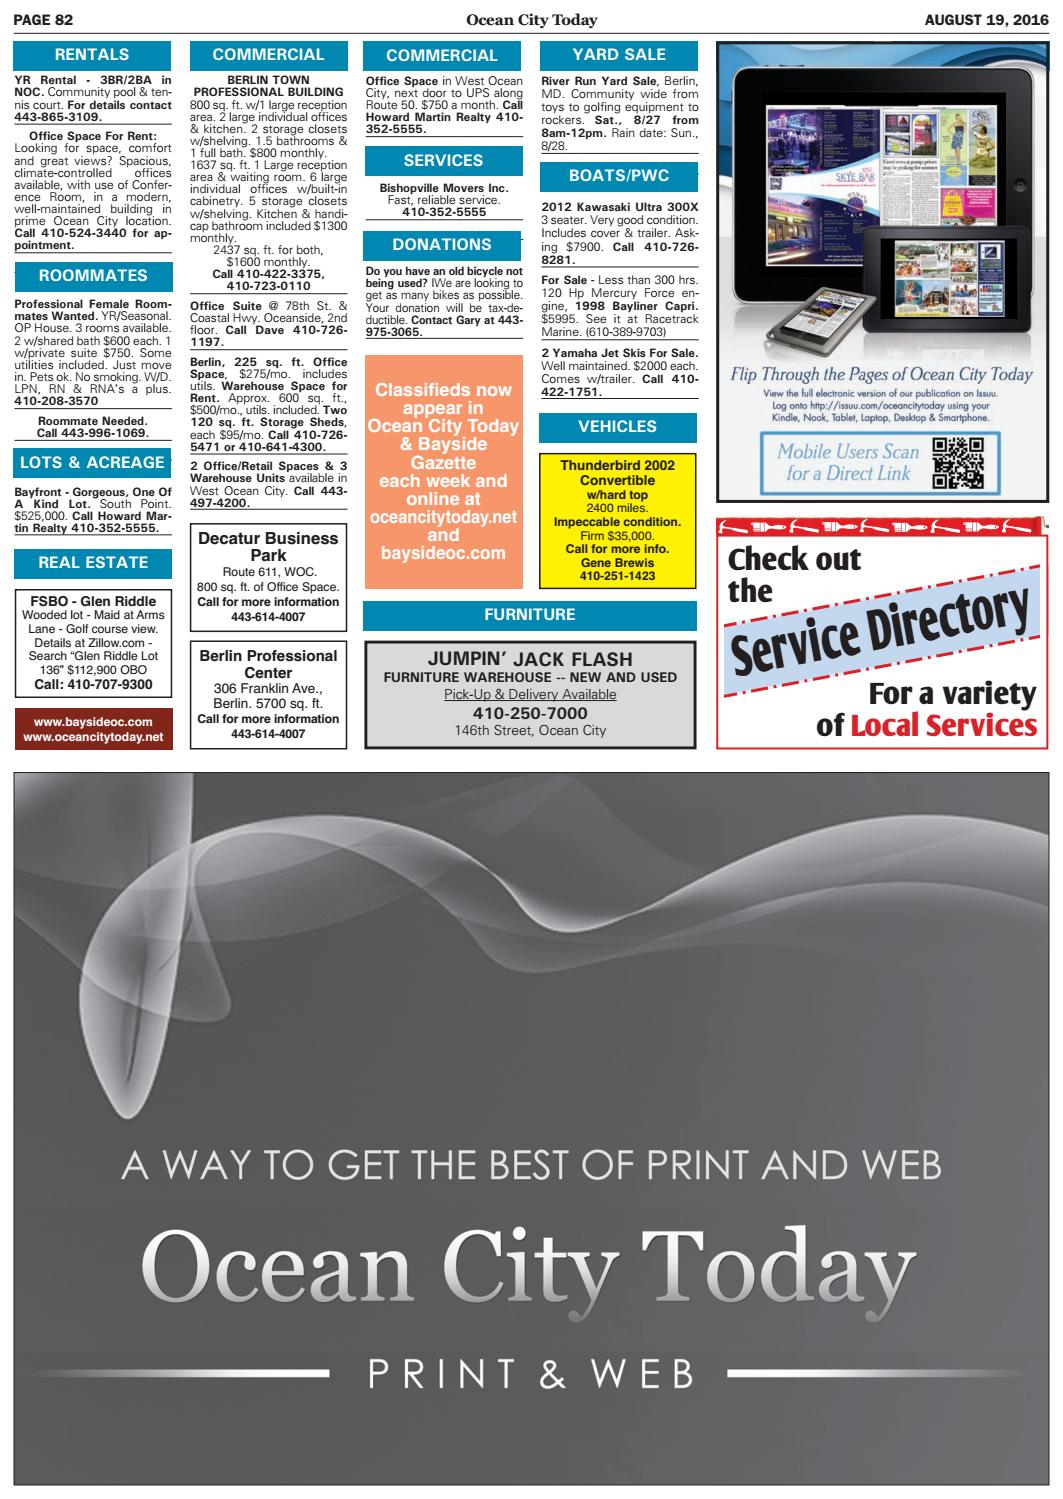 8/19/16 Ocean City Today by ocean city today - issuu